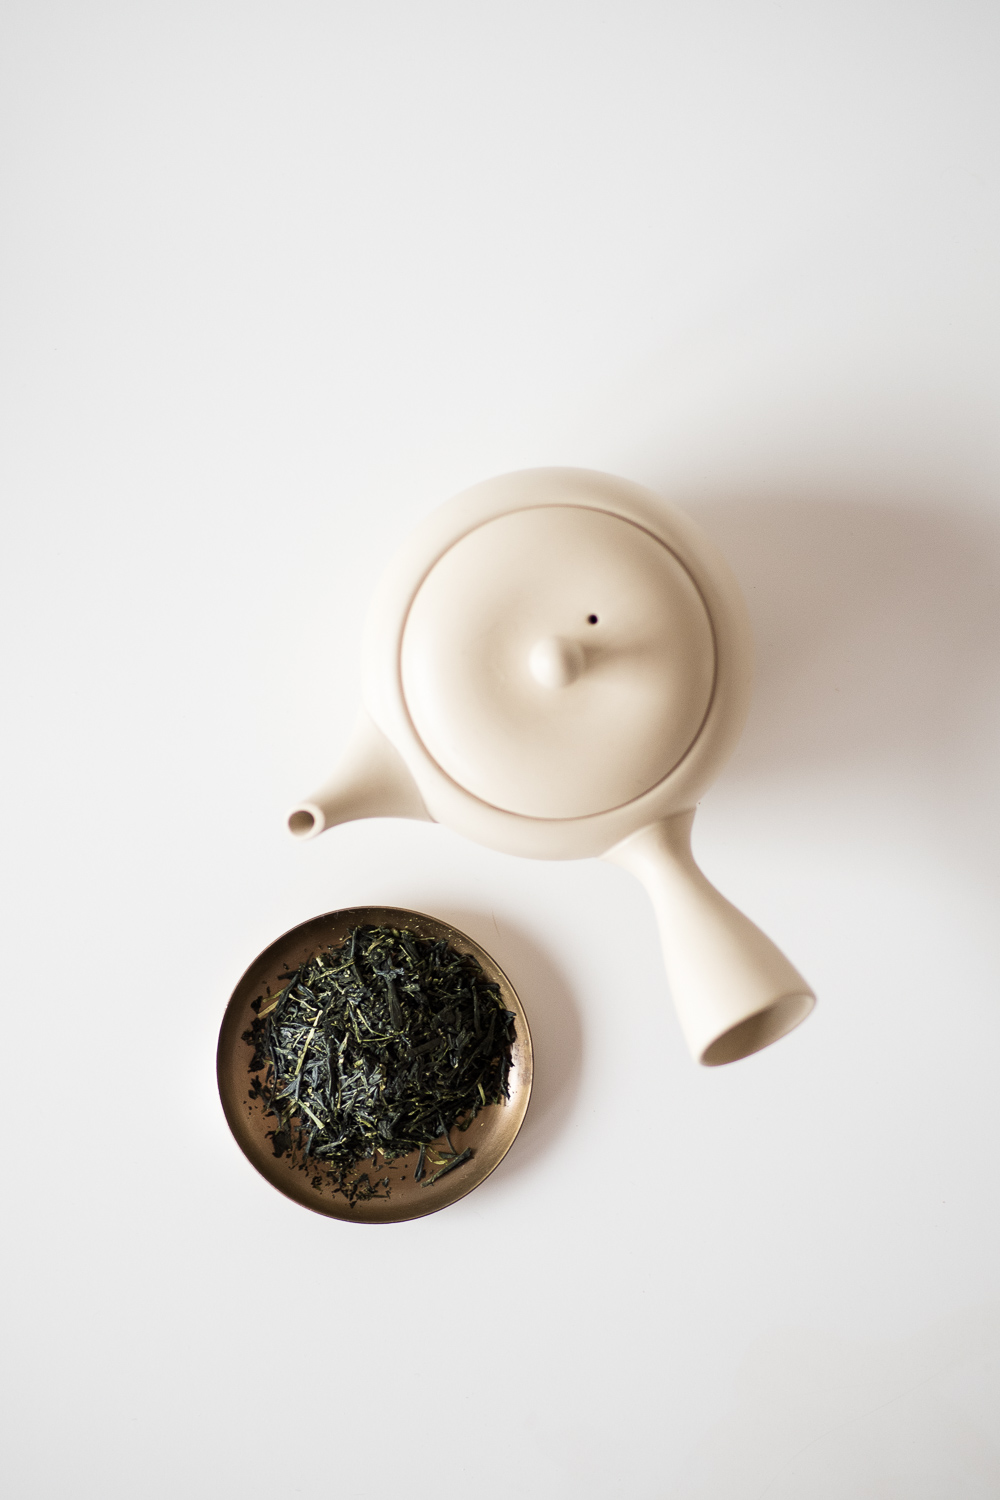 """- Brewing Japanese green tea is easy and fun, and can yield some delicious results.Senchado (""""the way of sencha"""") is the preferred way to prepare higher grades of green tea, particularly gyokuro and sencha, as it helps to concentrate their flavour and aroma, and enhance appreciation through multiple infusions. This preparation style may also be used to brew other styles of Japanese tea.Senchado is most recognisable for its application in tea ceremonies, both religious and secular. Similar to gongfu cha, it offers a wonderful way to appreciate tea, whether for your everyday ritual of personal focus and introspection, or for welcoming guests to Japanese tea."""